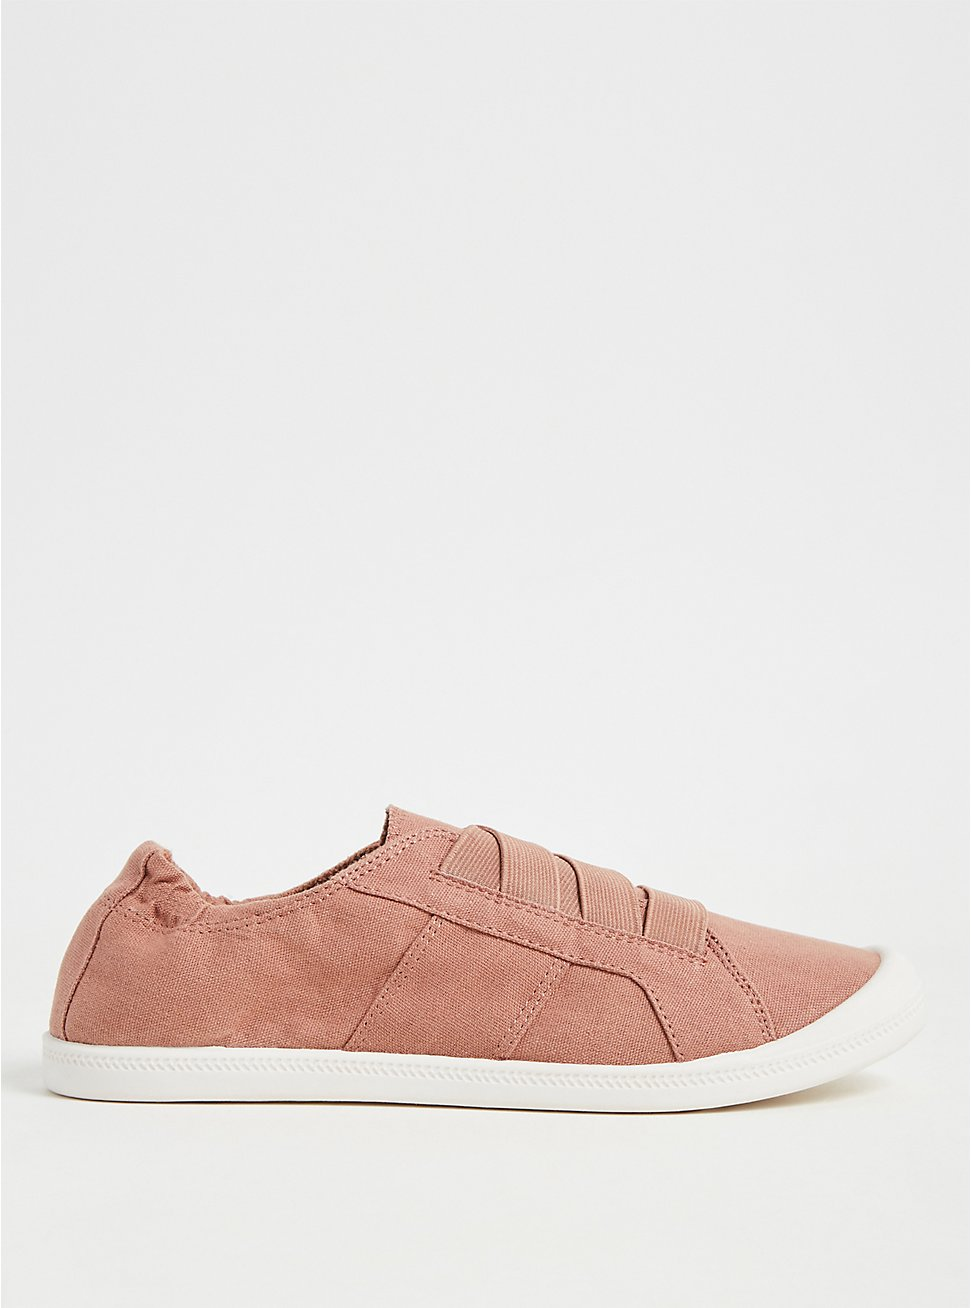 Riley - Dusty Pink Stretch Lace Ruched Sneaker (WW), PINK, hi-res